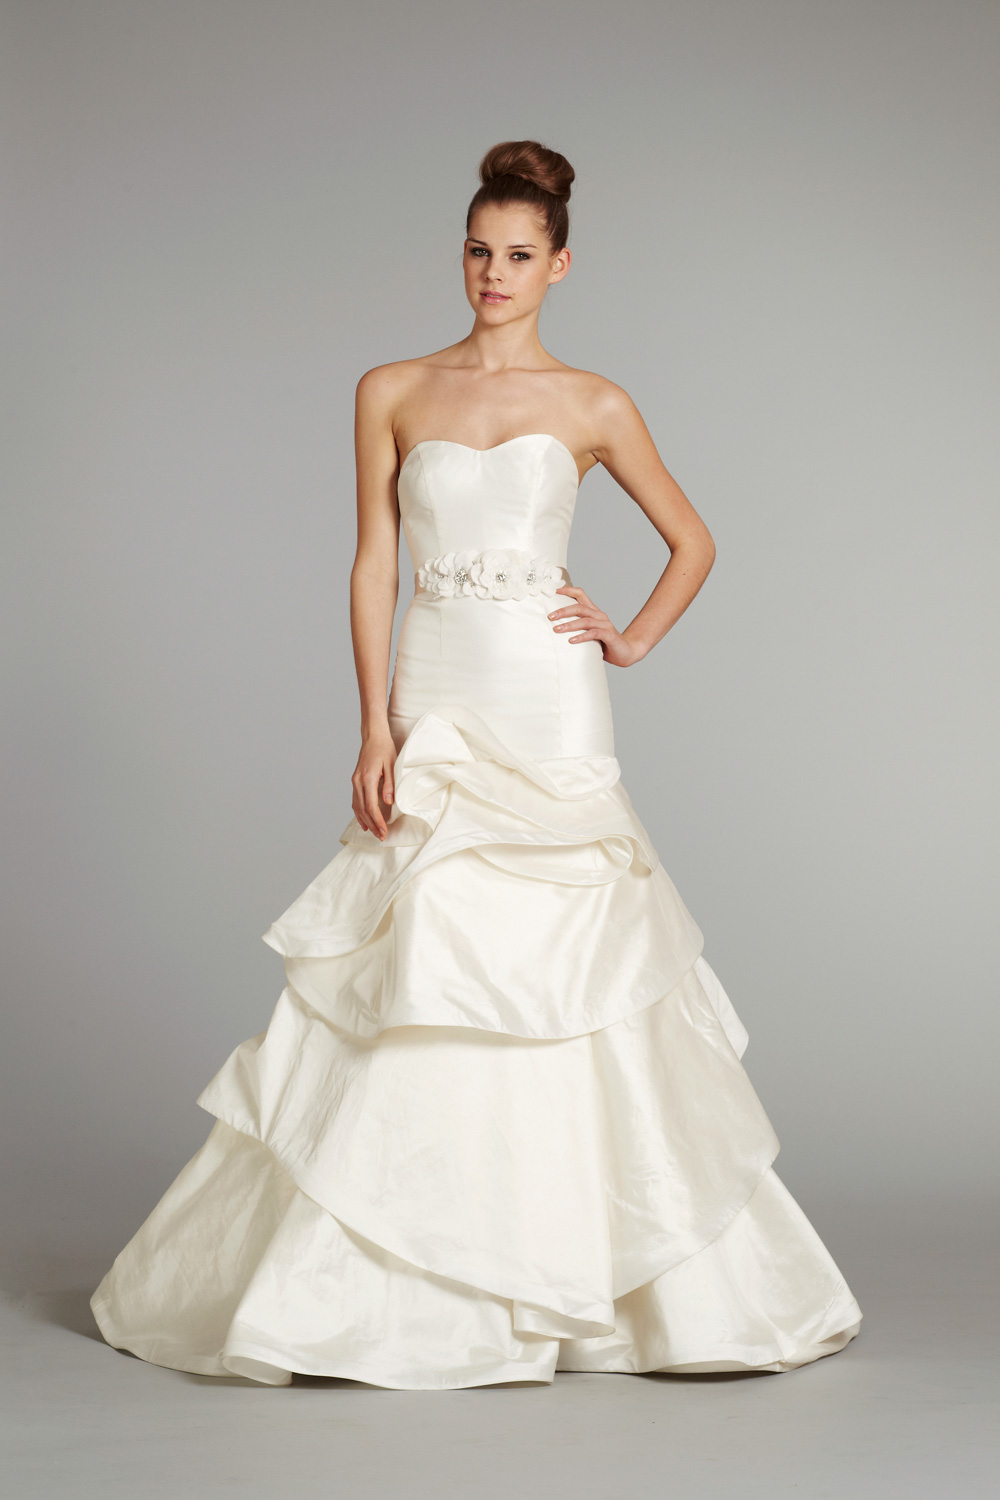 Bridal-gown-wedding-dress-jlm-hayley-paige-fall-2012-pearl-front.original